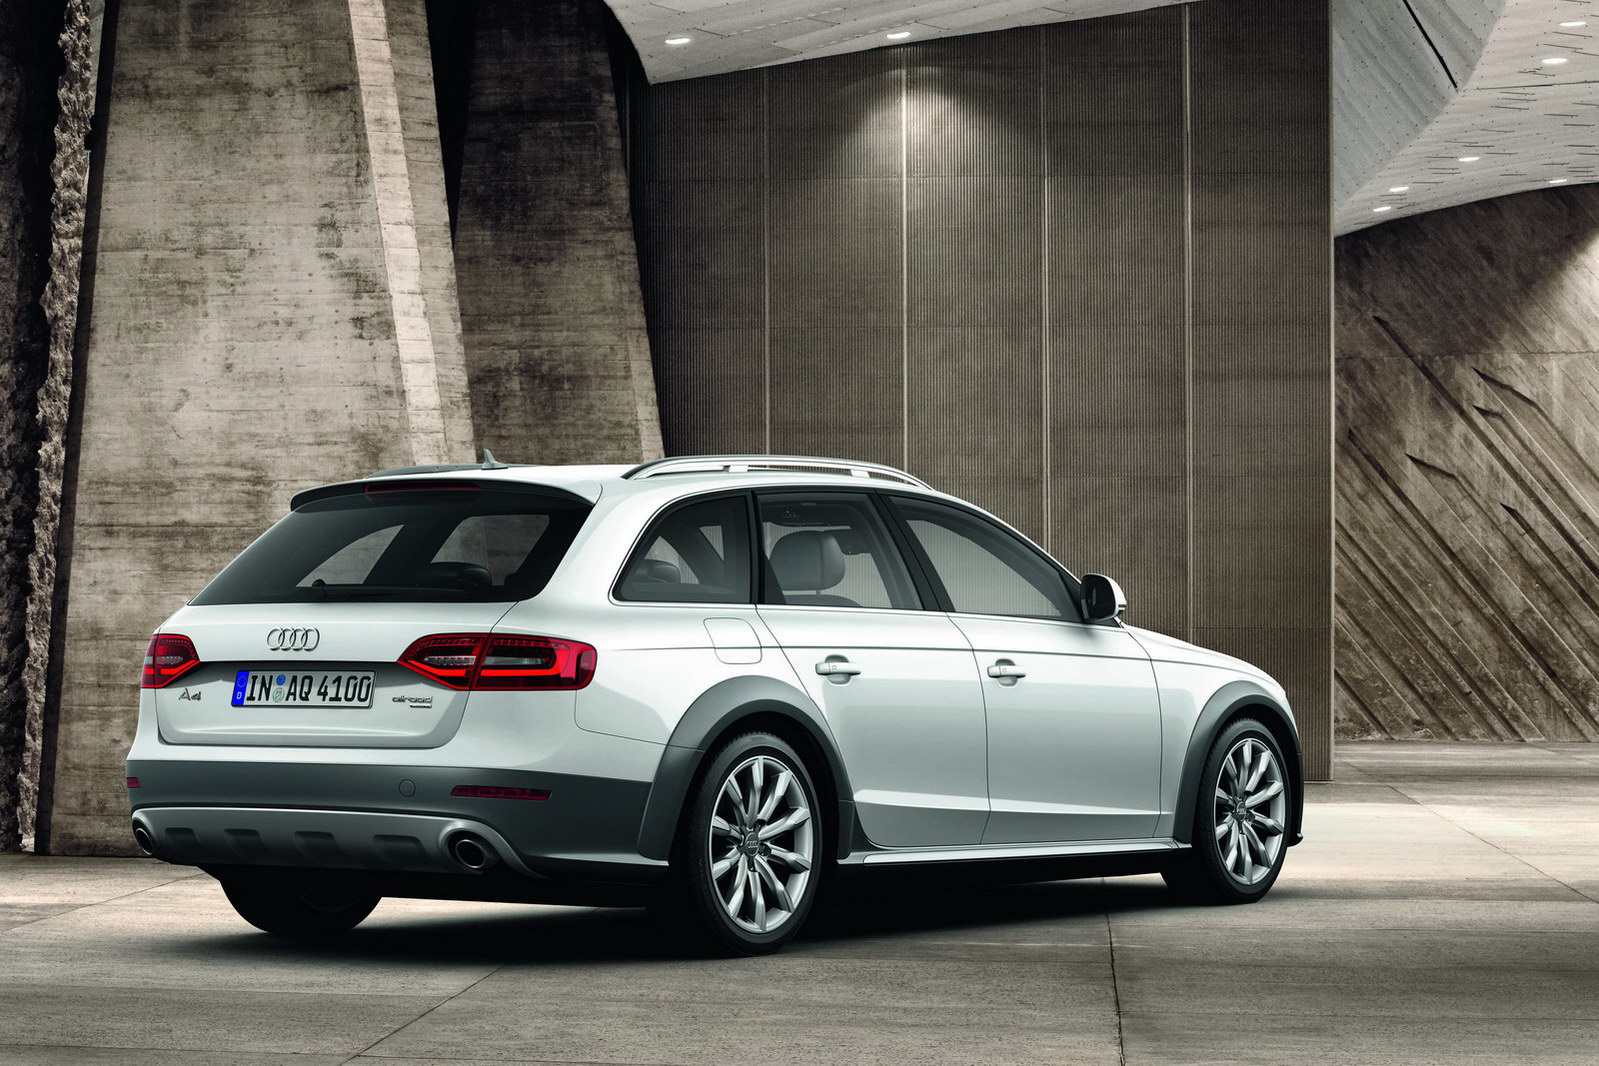 2013 audi a4 facelift revealed autoevolution. Black Bedroom Furniture Sets. Home Design Ideas